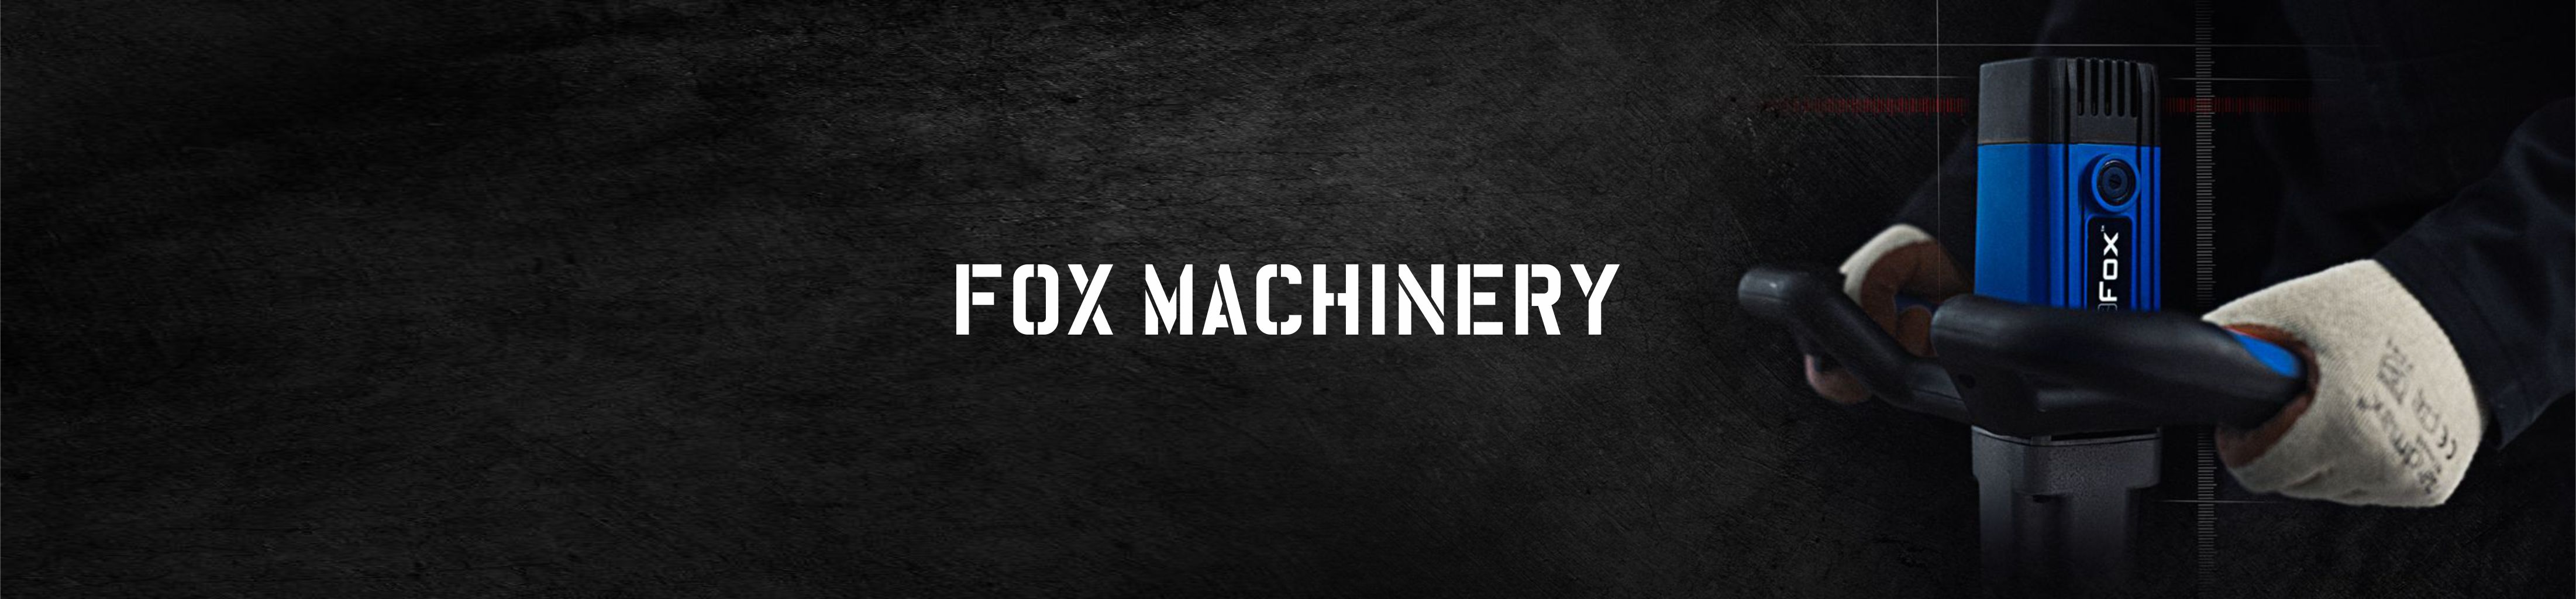 FOX Machinery